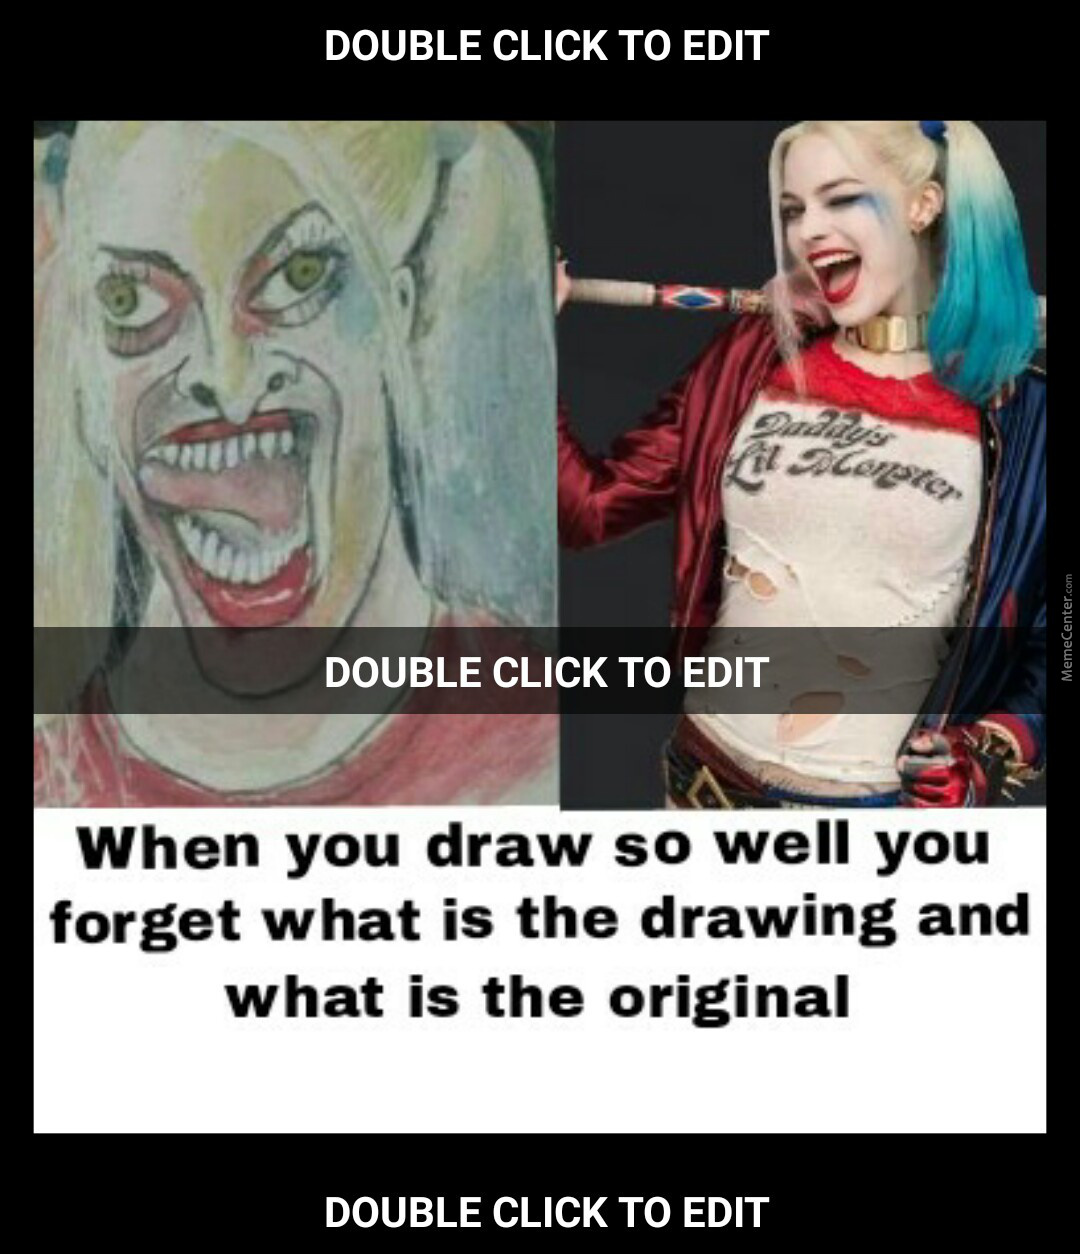 I Forgot Wich One Is The Original